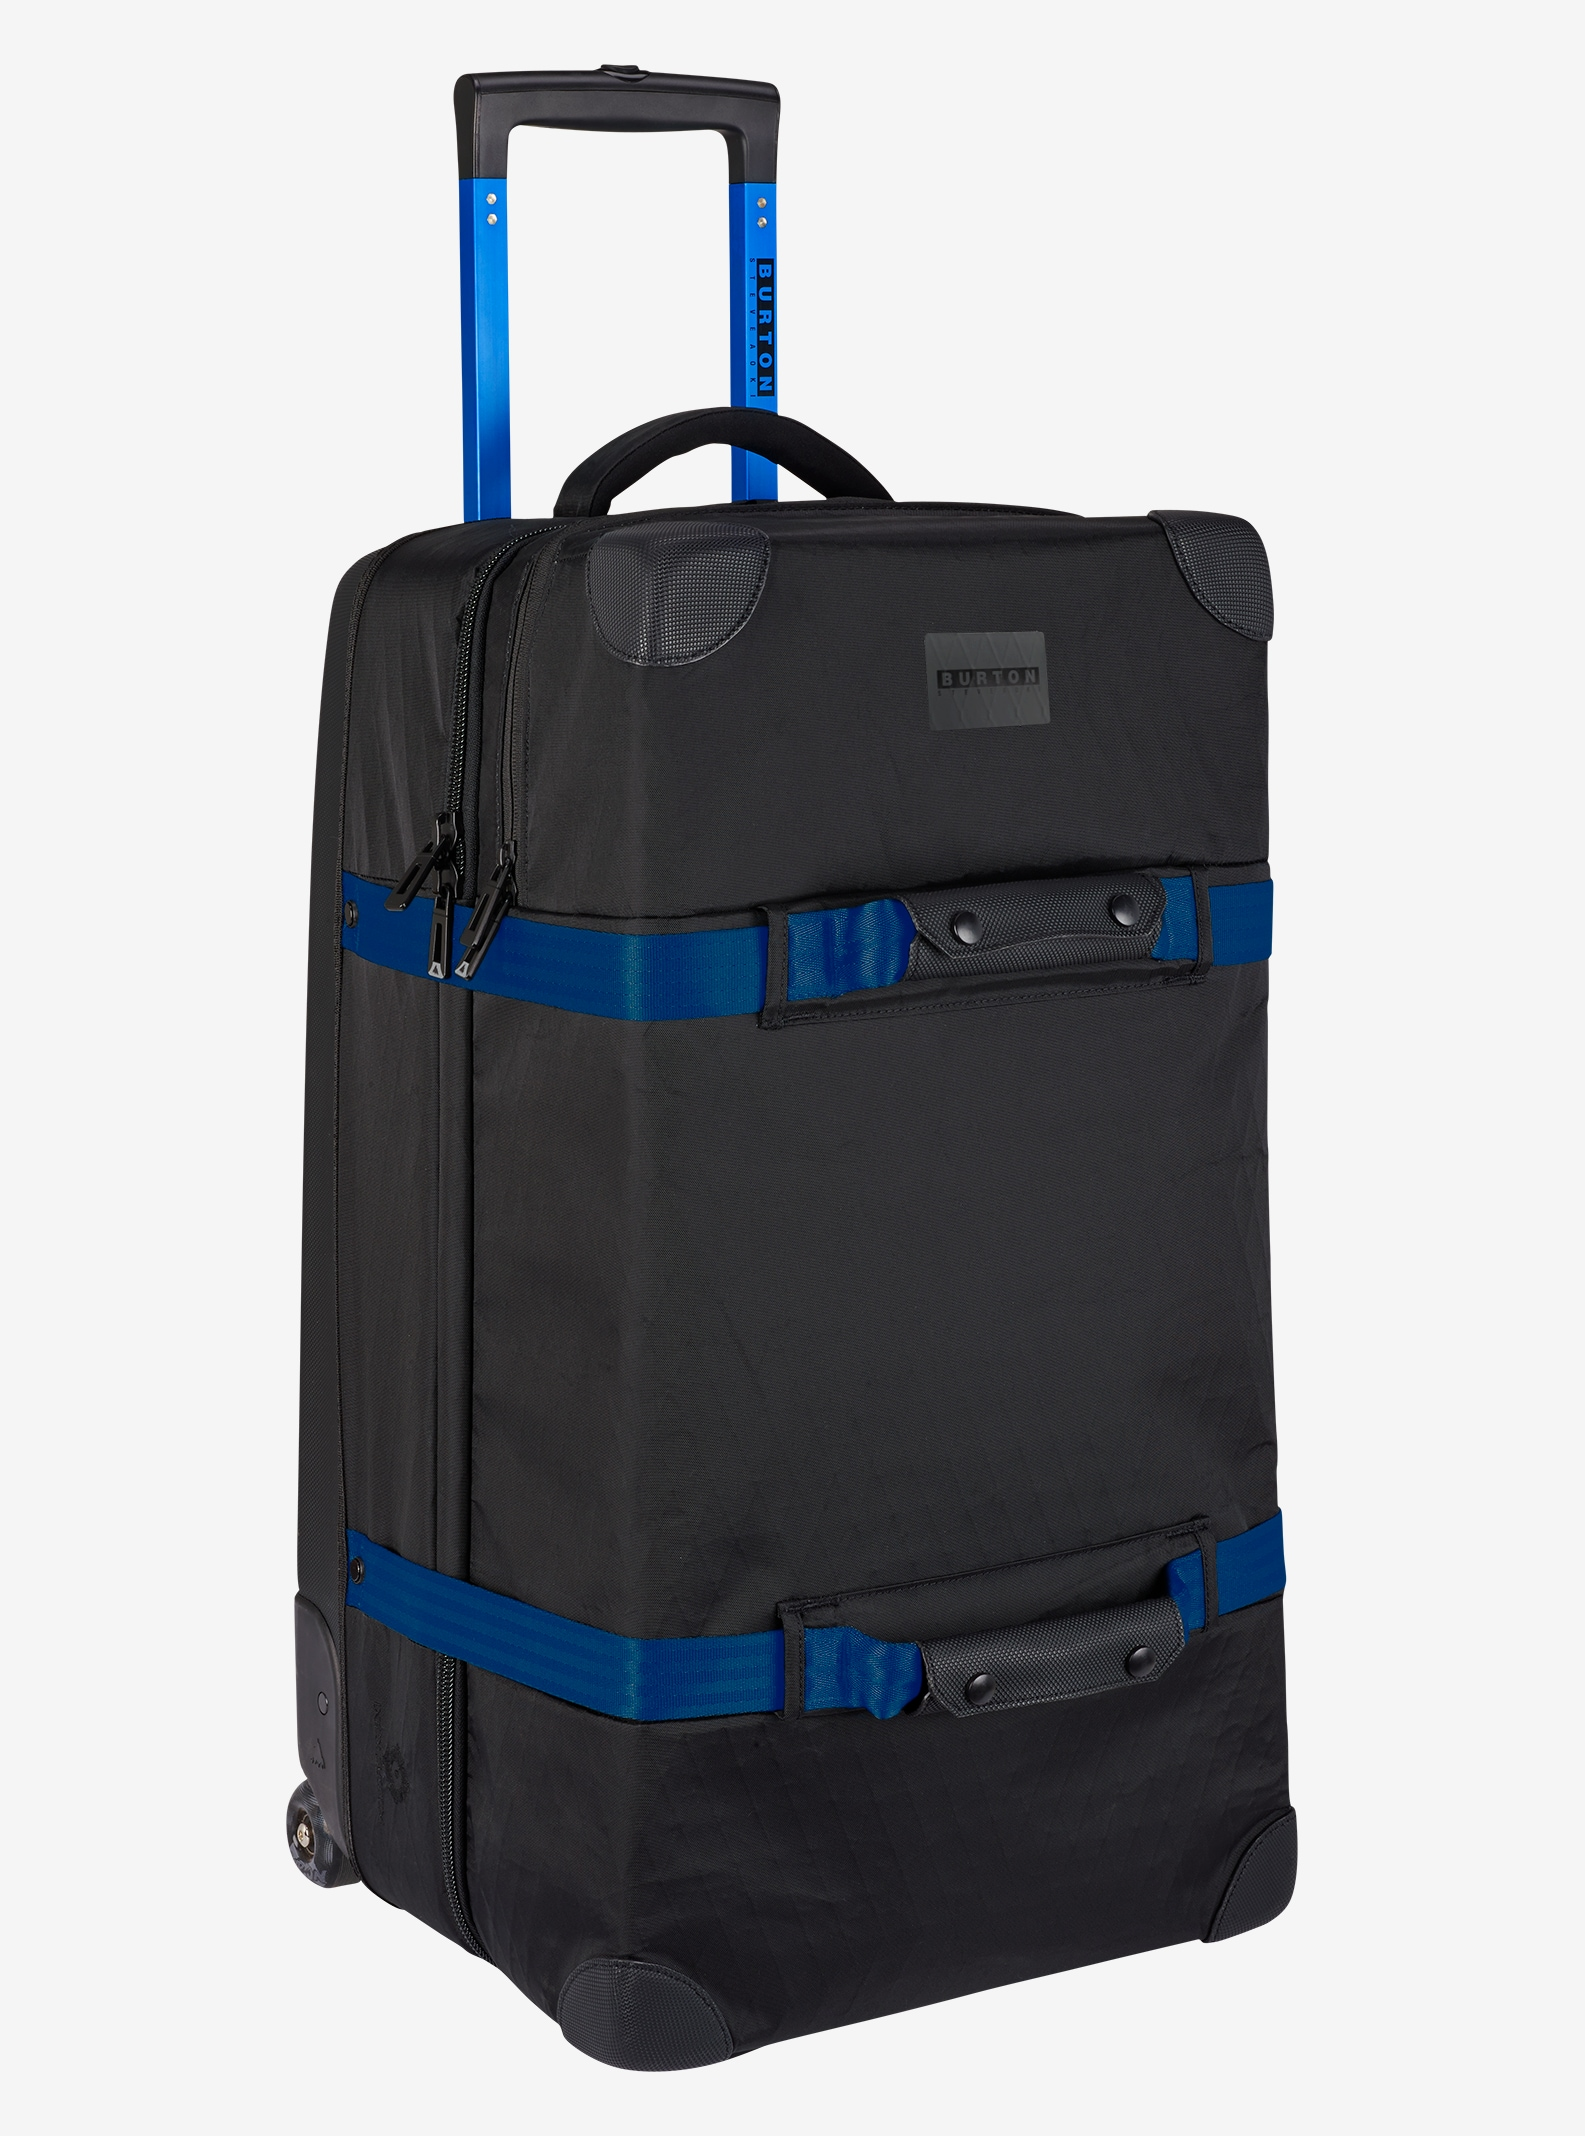 Burton x Aoki Wheelie Double Deck Travel Bag shown in Aoki Black